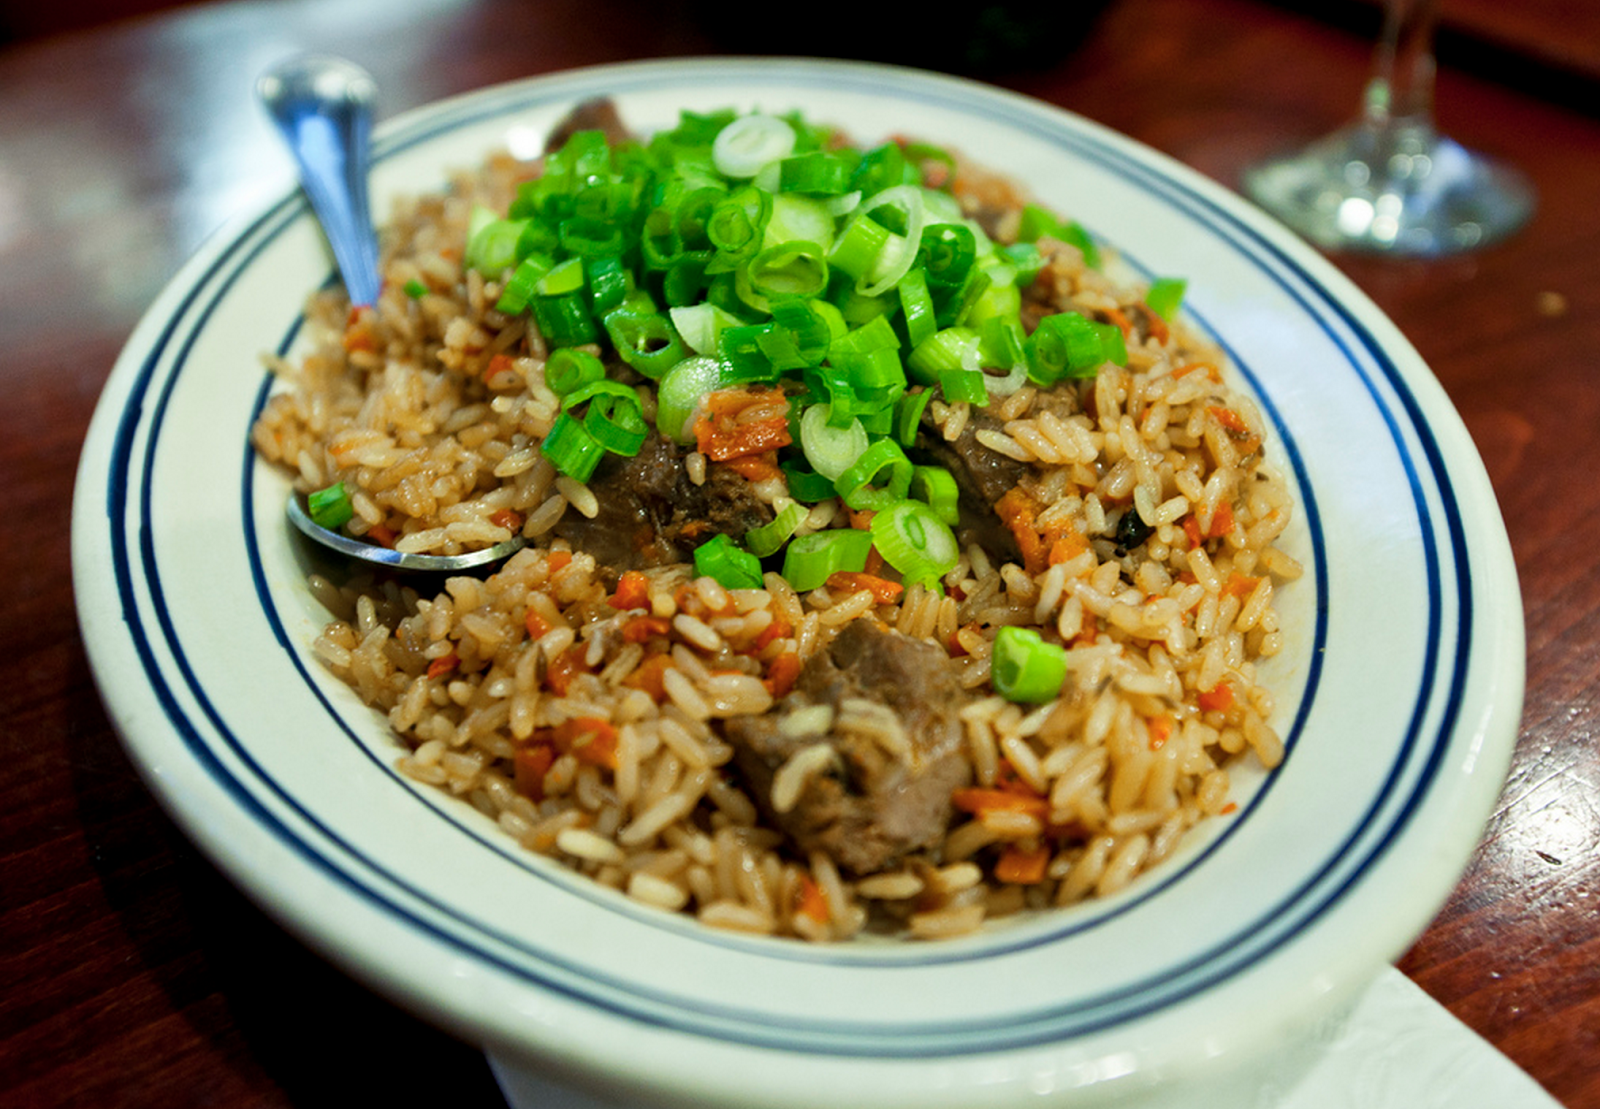 Plov - is a rice dish where meat is cooked separately first and then everything is cooked in one closed wok with water in the bottom.